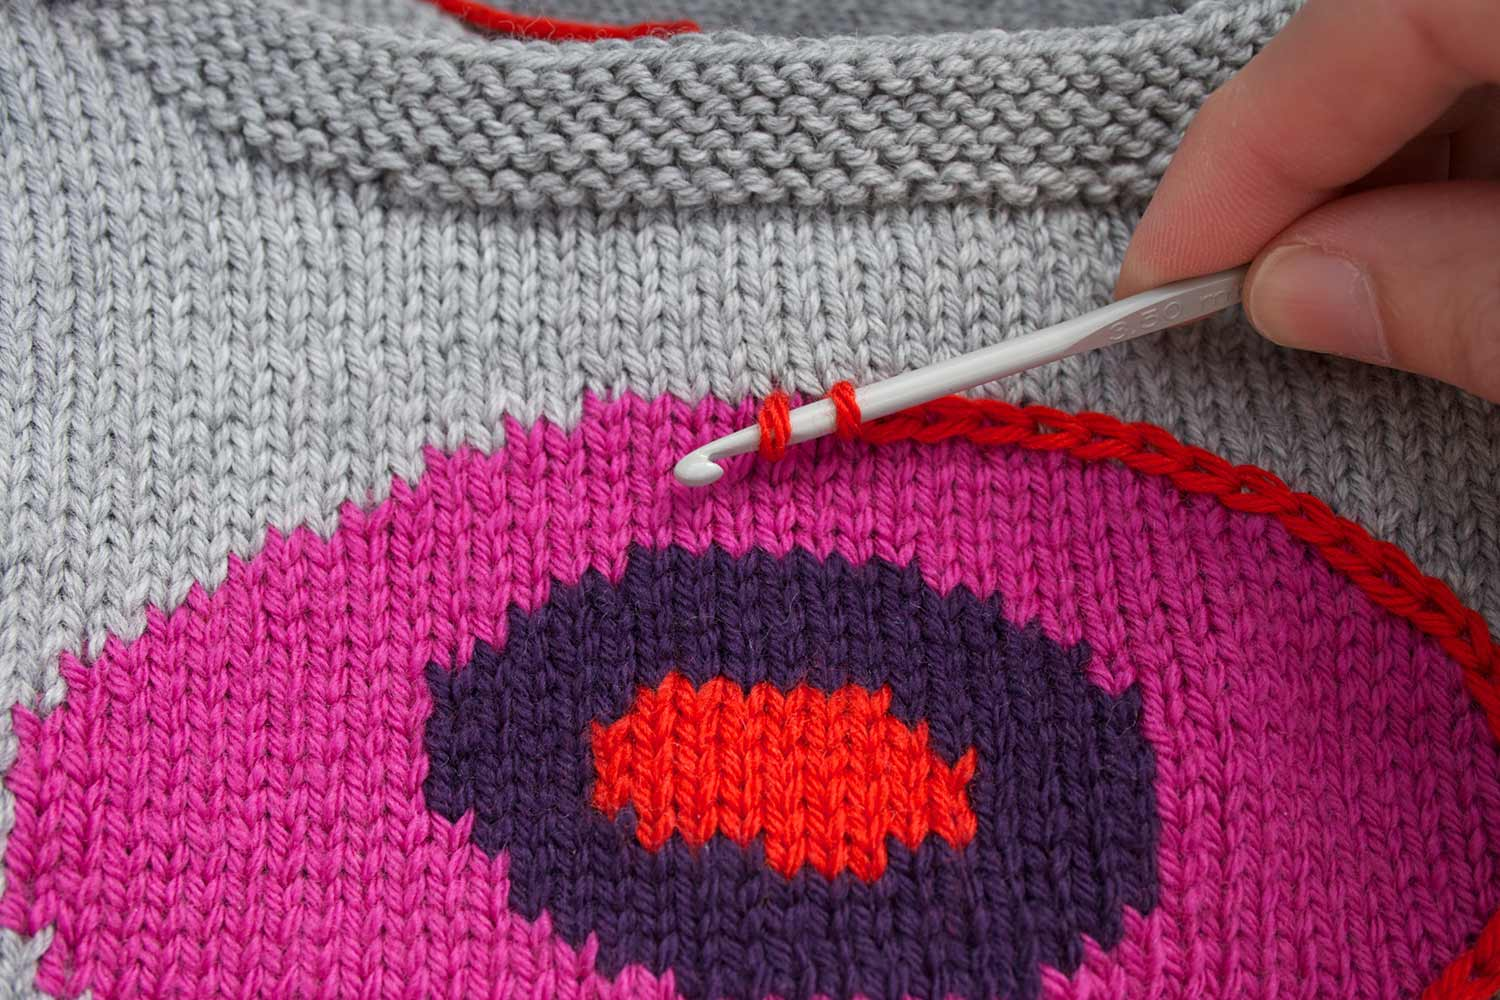 Several chain stitches created with a crochet hook bordering a circular motif worked in intarsia; crochet hook has two stitches on it.